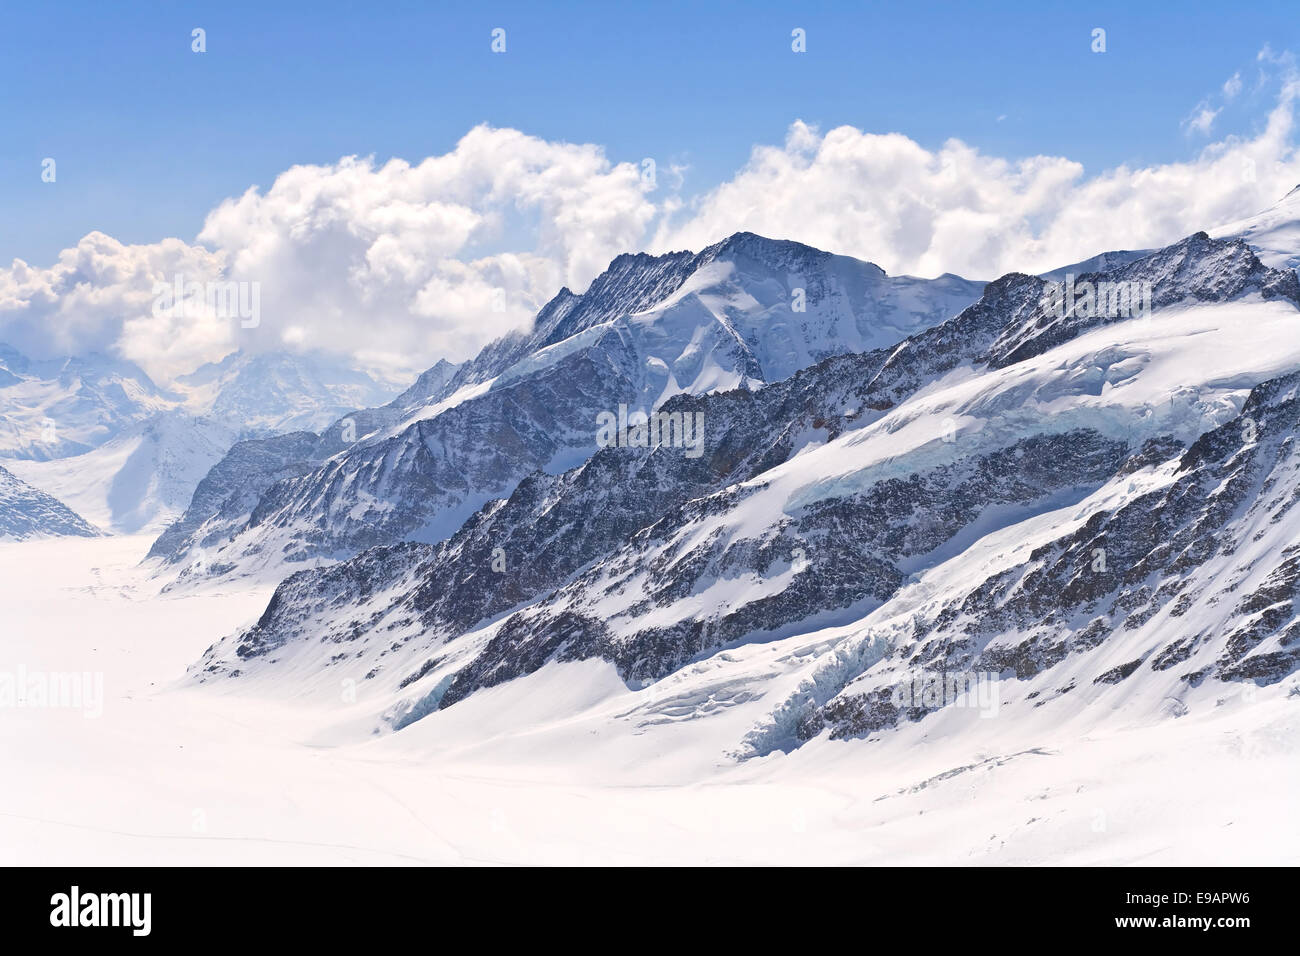 Alpes Aletsch Glacier Suisse Photo Stock